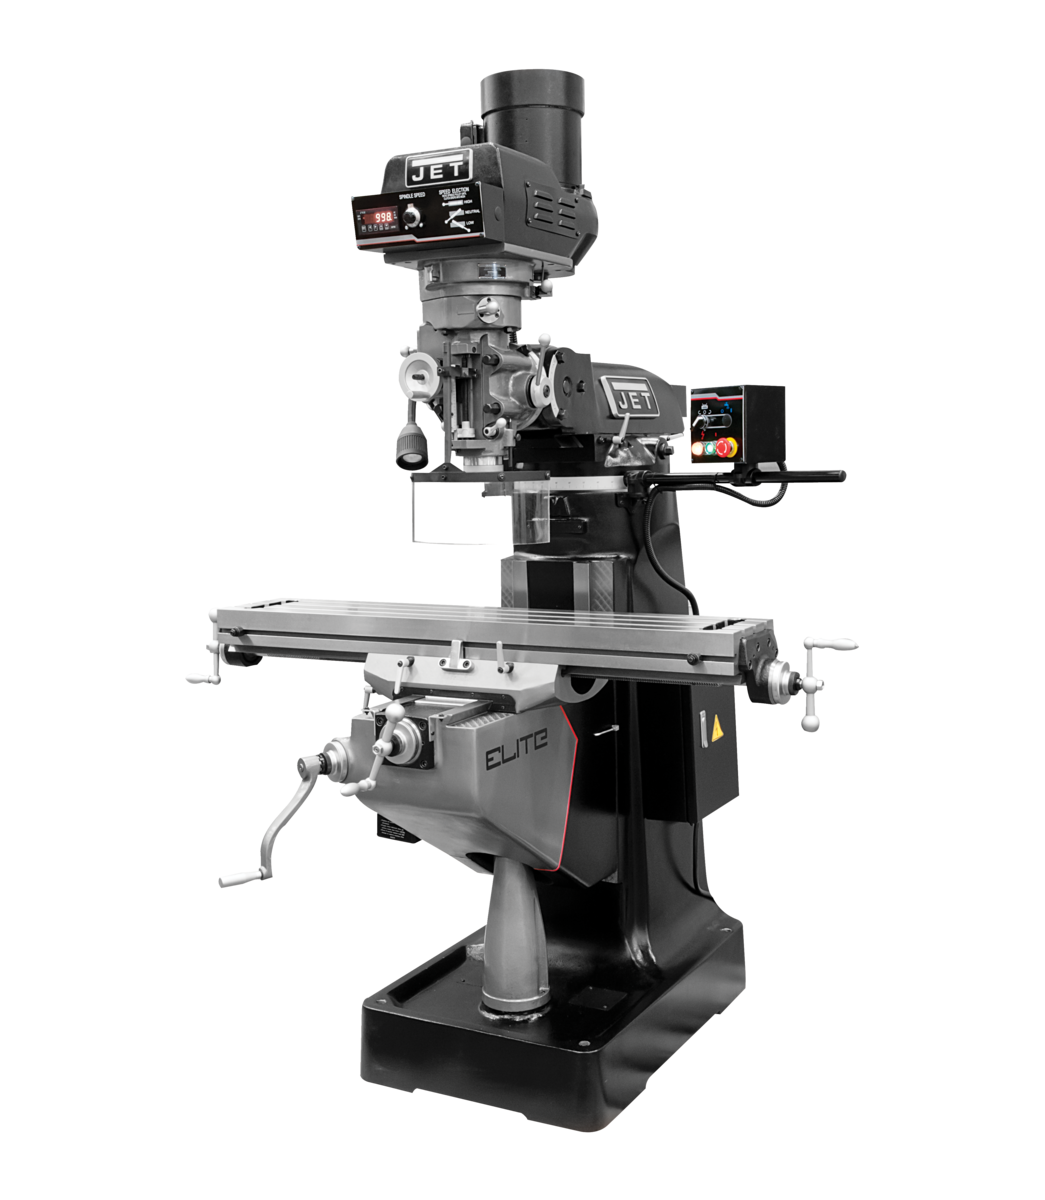 ETM-949 Mill With 2-Axis ACU-RITE MILLPWR G2 CNC